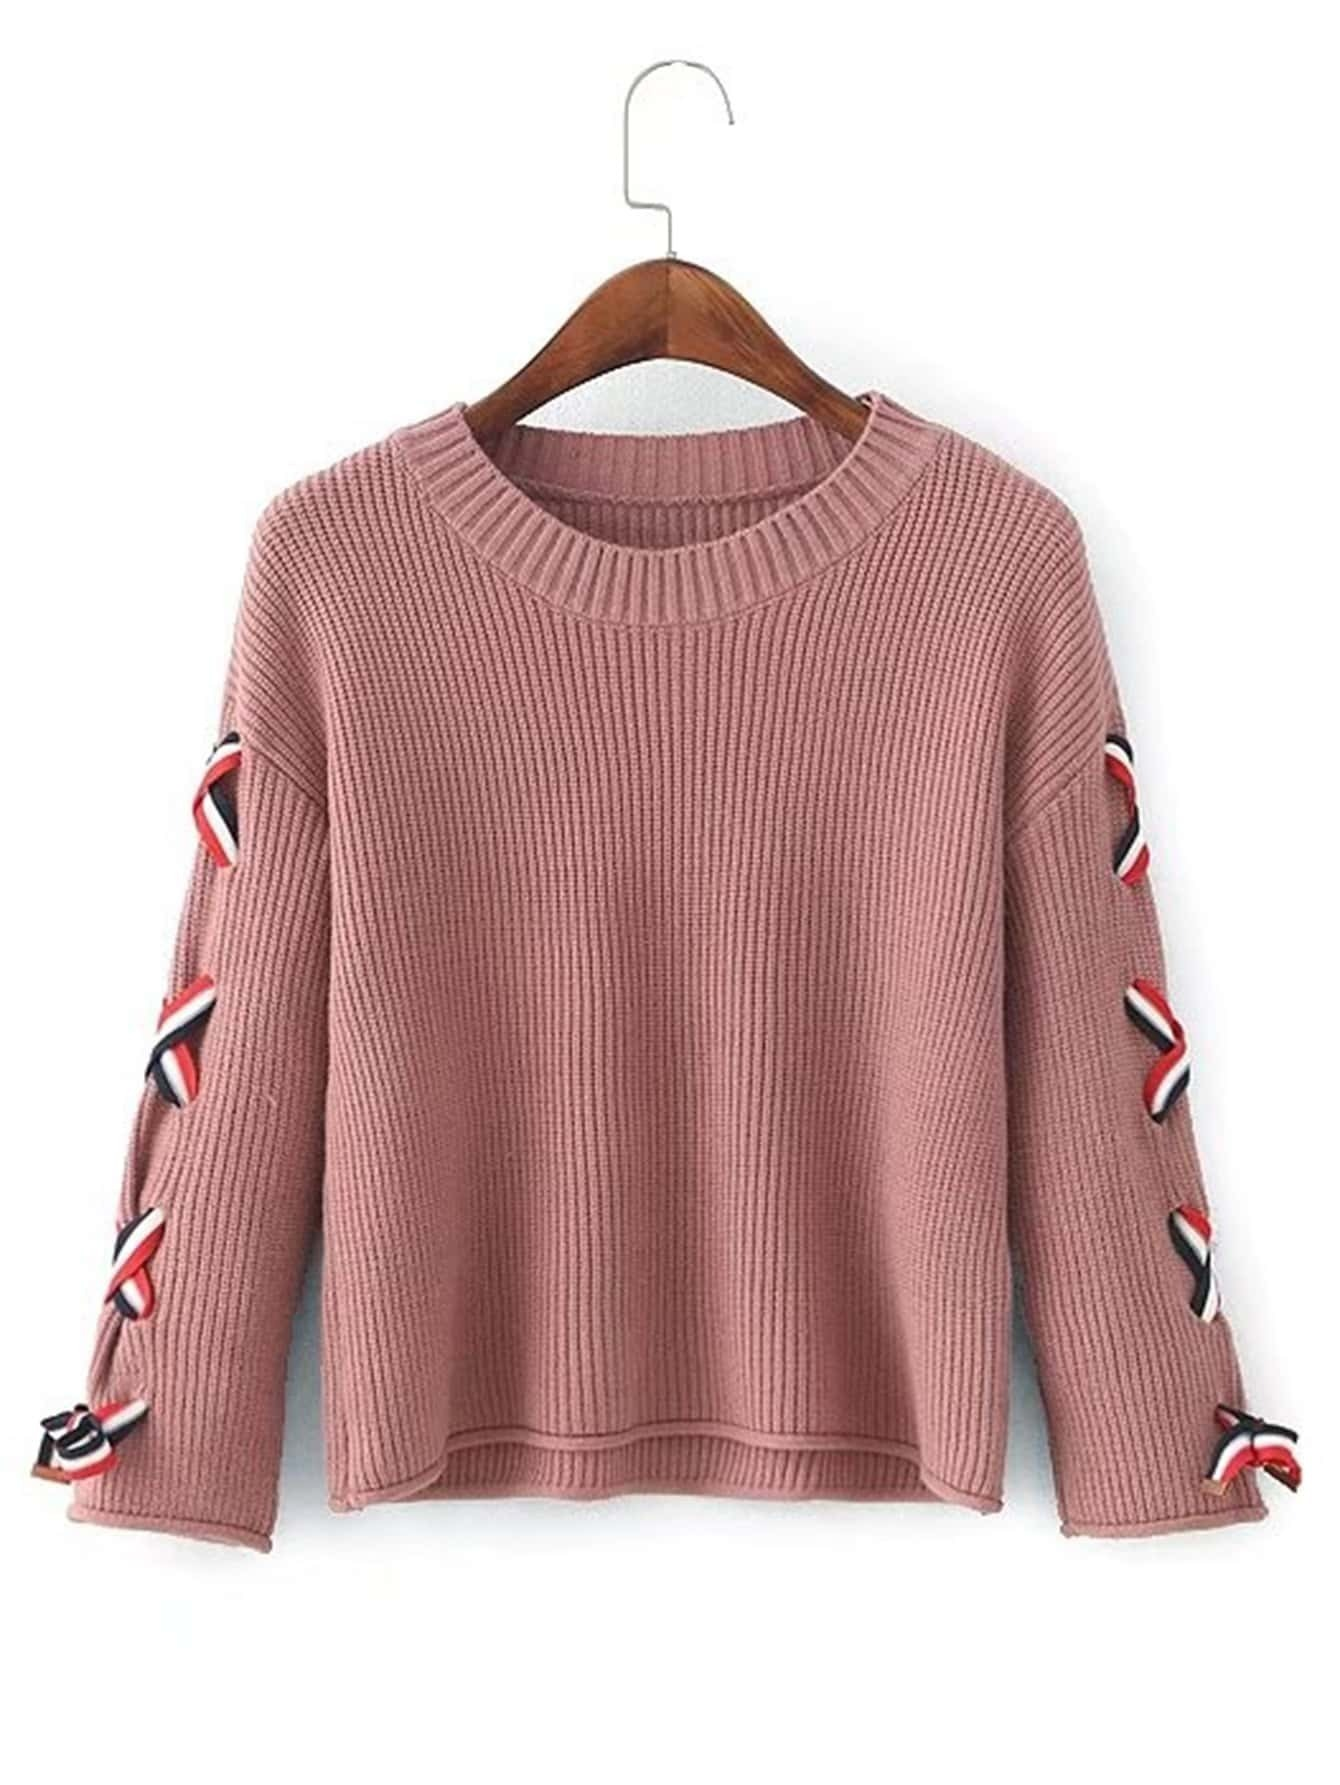 Lace Up Sleeve Ribbed Trim Sweater RKNI170904203